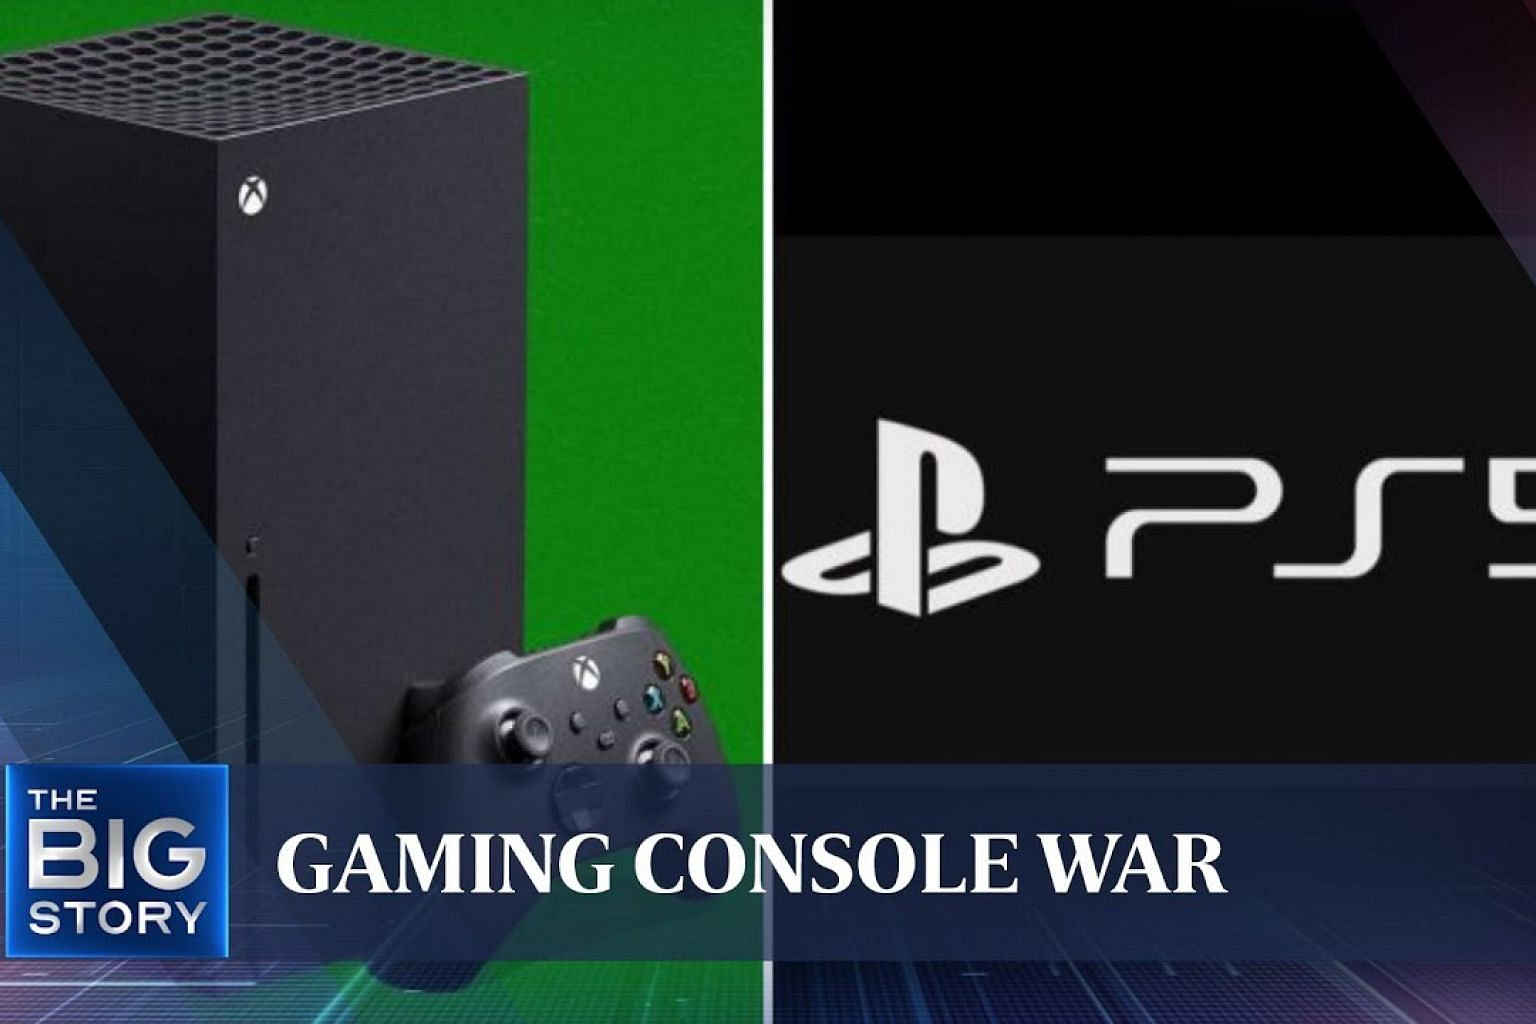 War of the gaming consoles | THE BIG STORY | The Straits Times